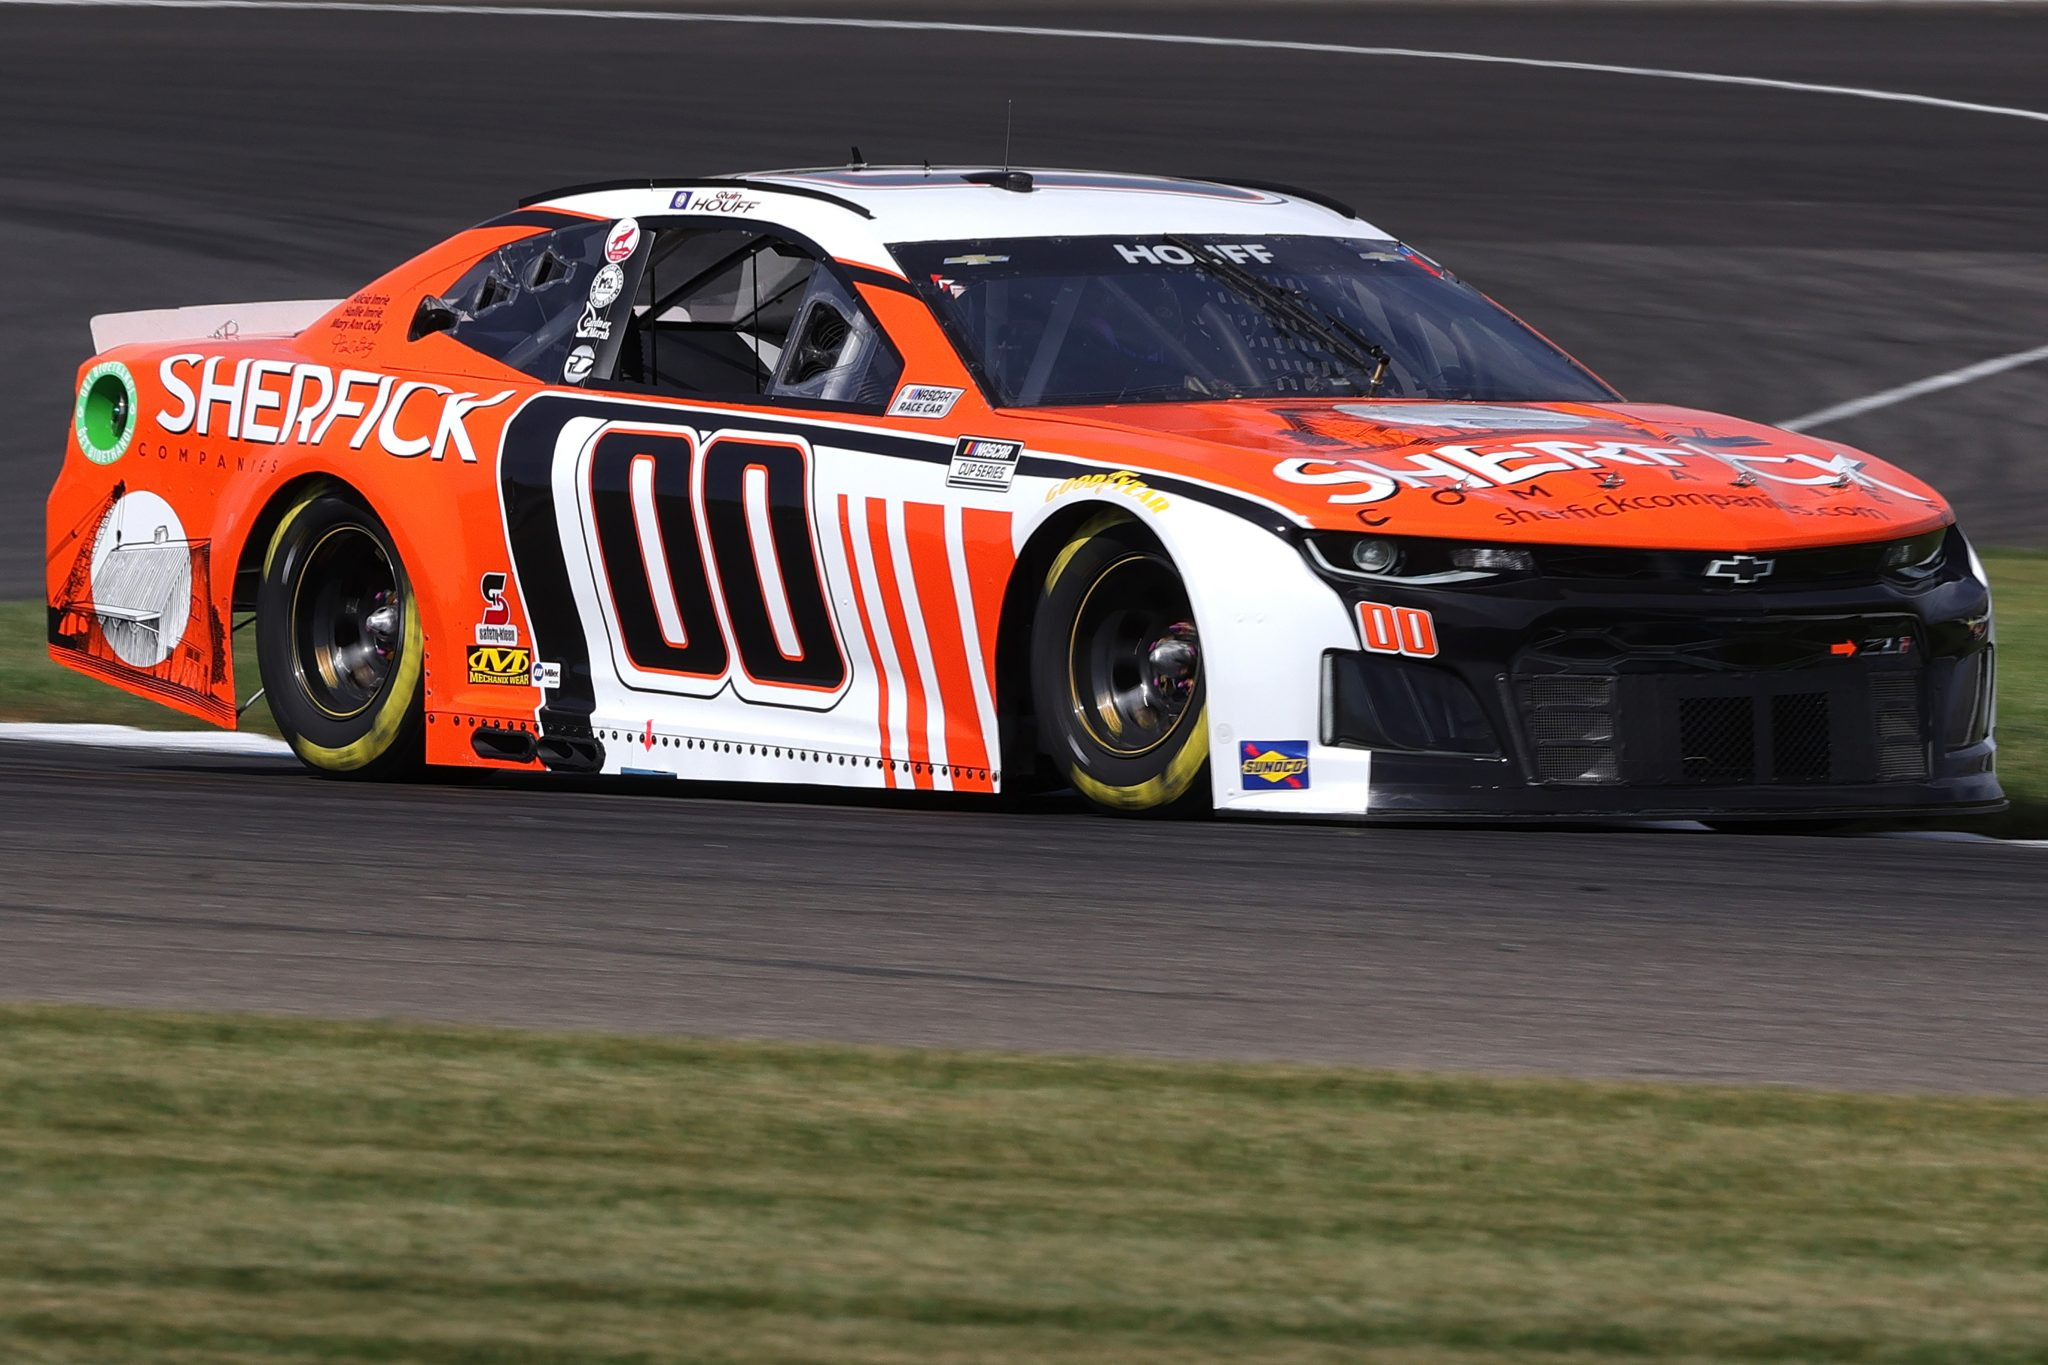 INDIANAPOLIS, INDIANA - AUGUST 14: Quin Houff, driver of the #00 Sherfick Companies Chevrolet, drives during practice for the NASCAR Cup Series Verizon 200 at the Brickyard at Indianapolis Motor Speedway on August 14, 2021 in Indianapolis, Indiana. (Photo by Stacy Revere/Getty Images)   Getty Images